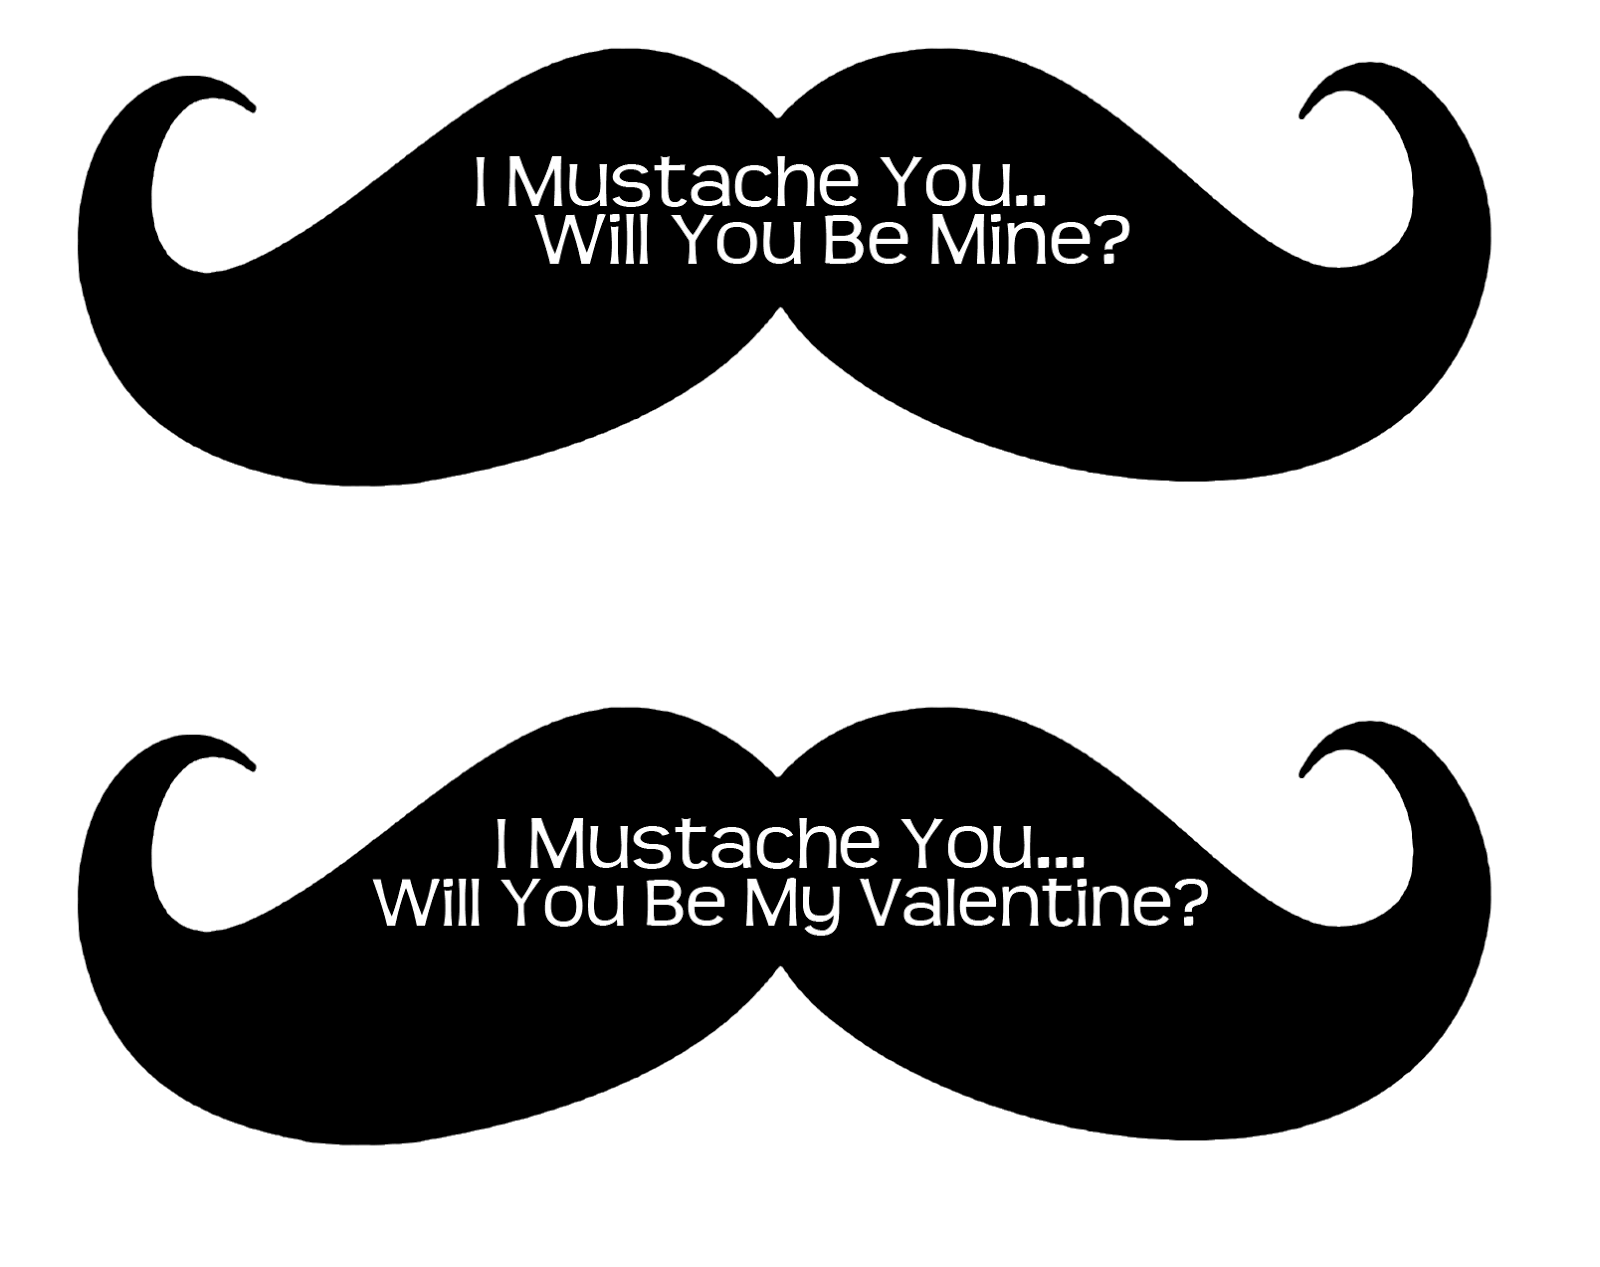 I Mustache You A Question| Free Printable Valentines | Frugalful 2.0